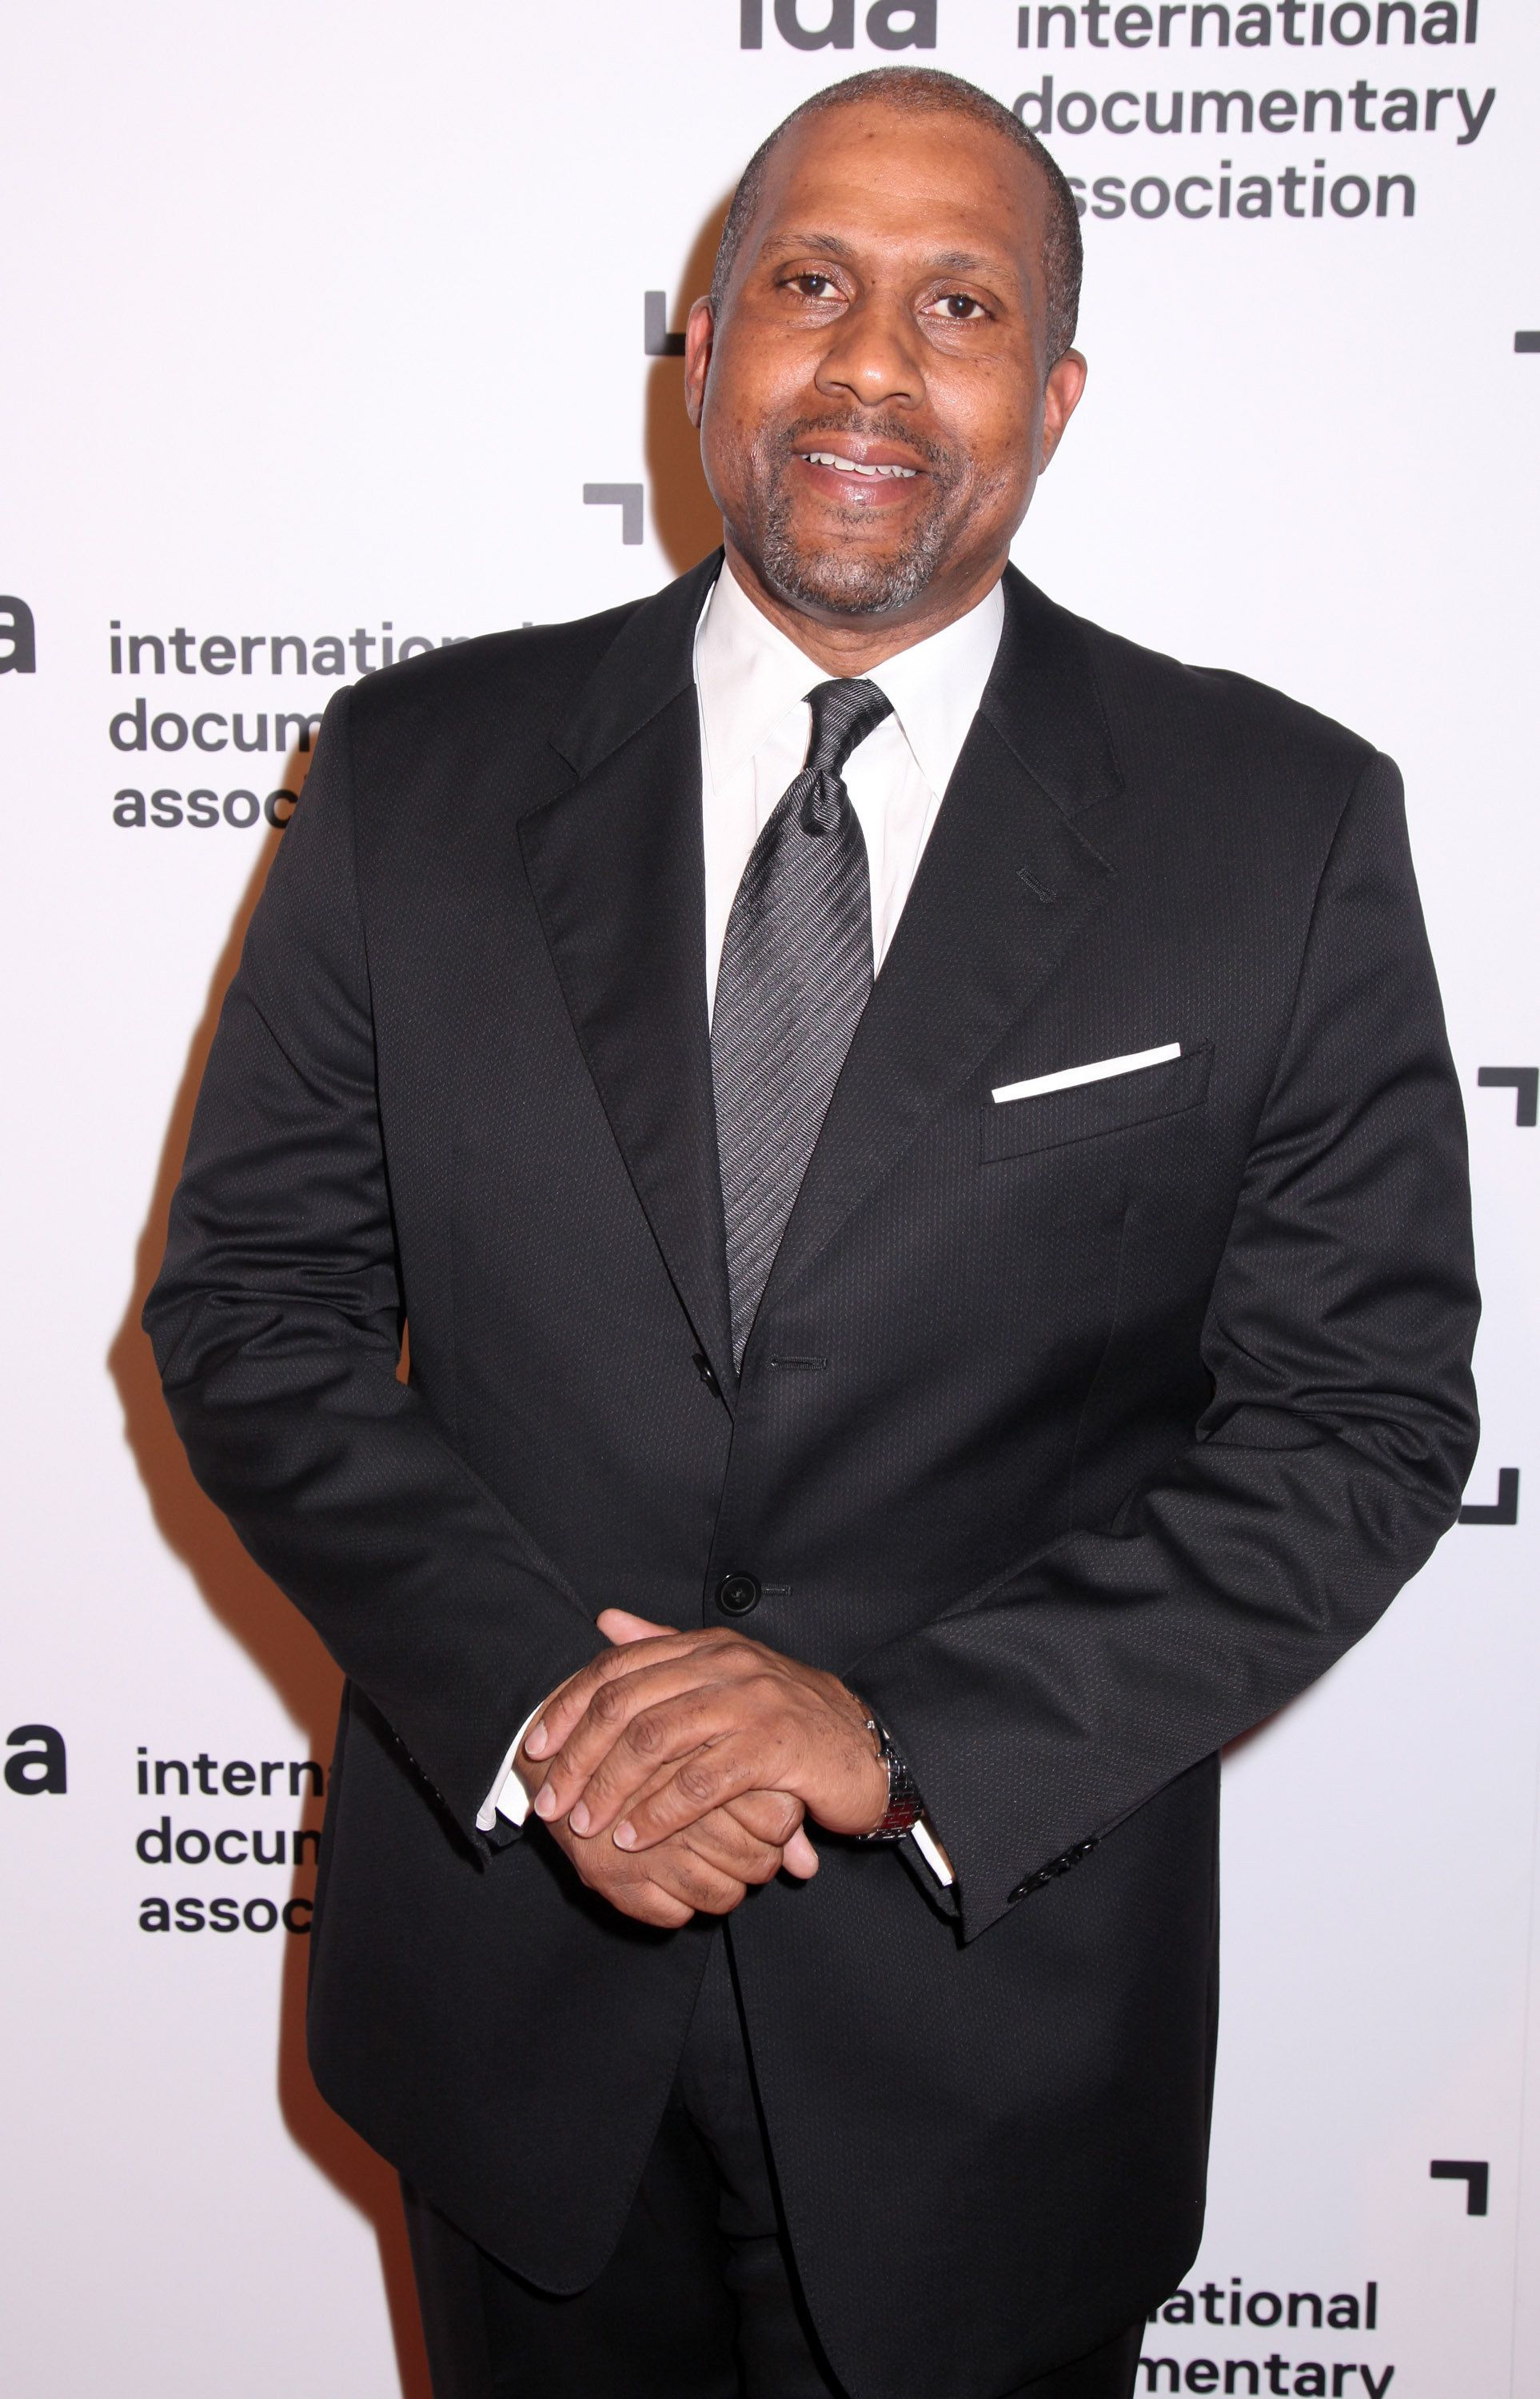 HOLLYWOOD, CA - DECEMBER 05:  Talk show host Tavis Smiley arrives at the International Documentary Association's 2014 IDA Documentary Awards at Paramount Studios on December 5, 2014 in Hollywood, California.  (Photo by Paul Redmond/WireImage)